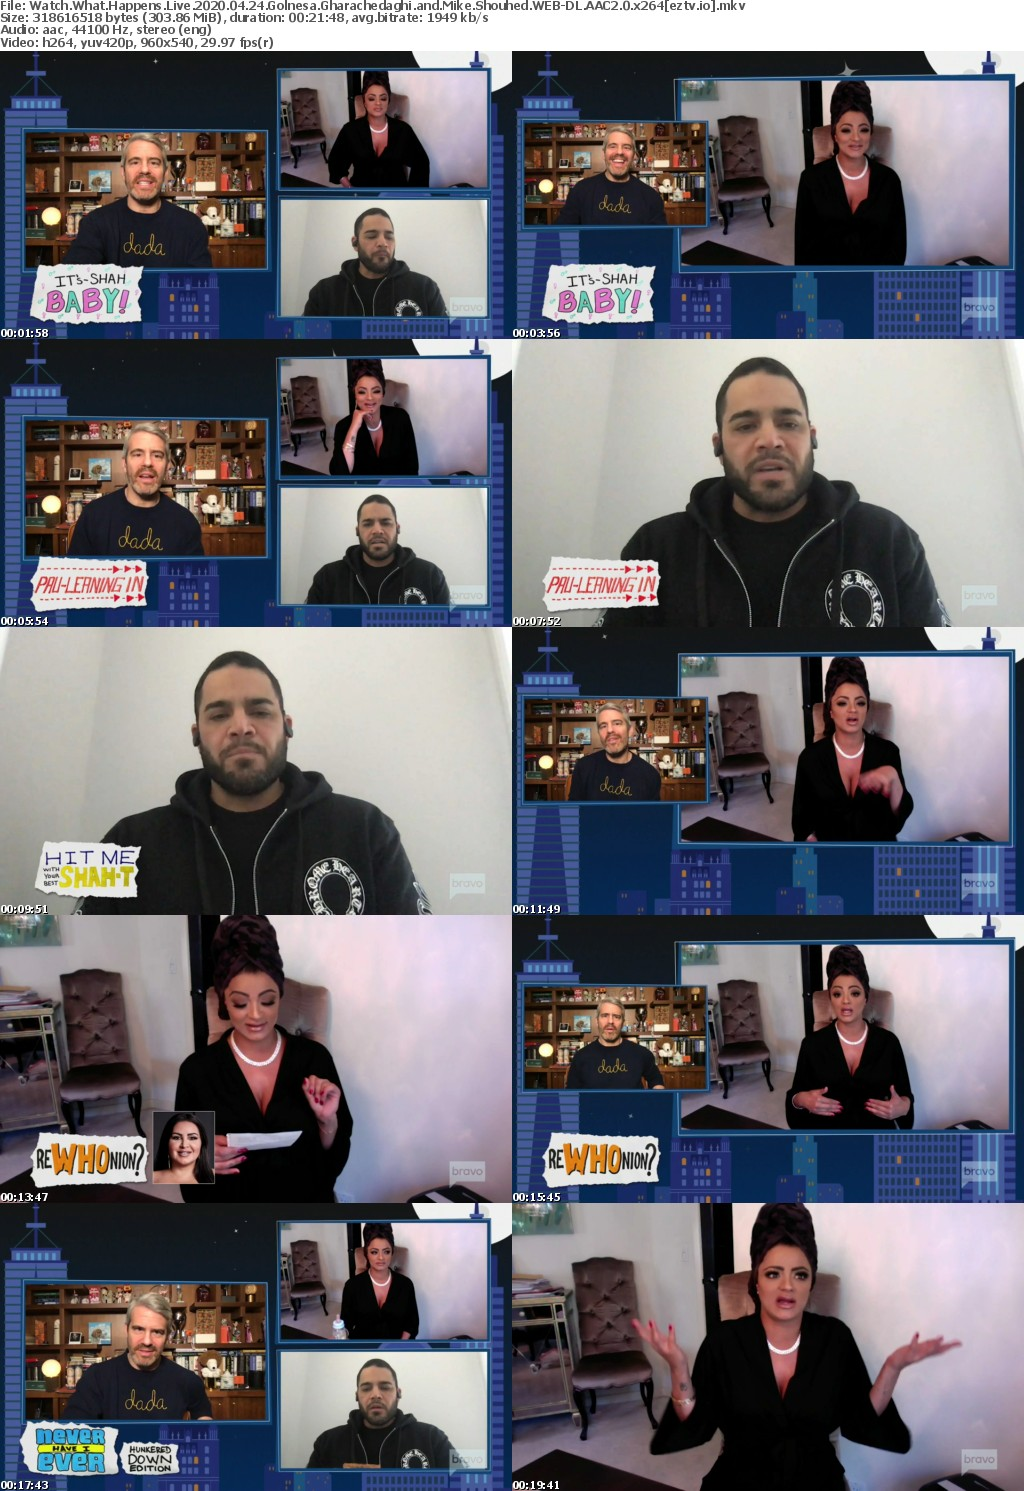 Watch What Happens Live 2020 04 24 Golnesa Gharachedaghi and Mike Shouhed WEB-DL AAC2 0 x264